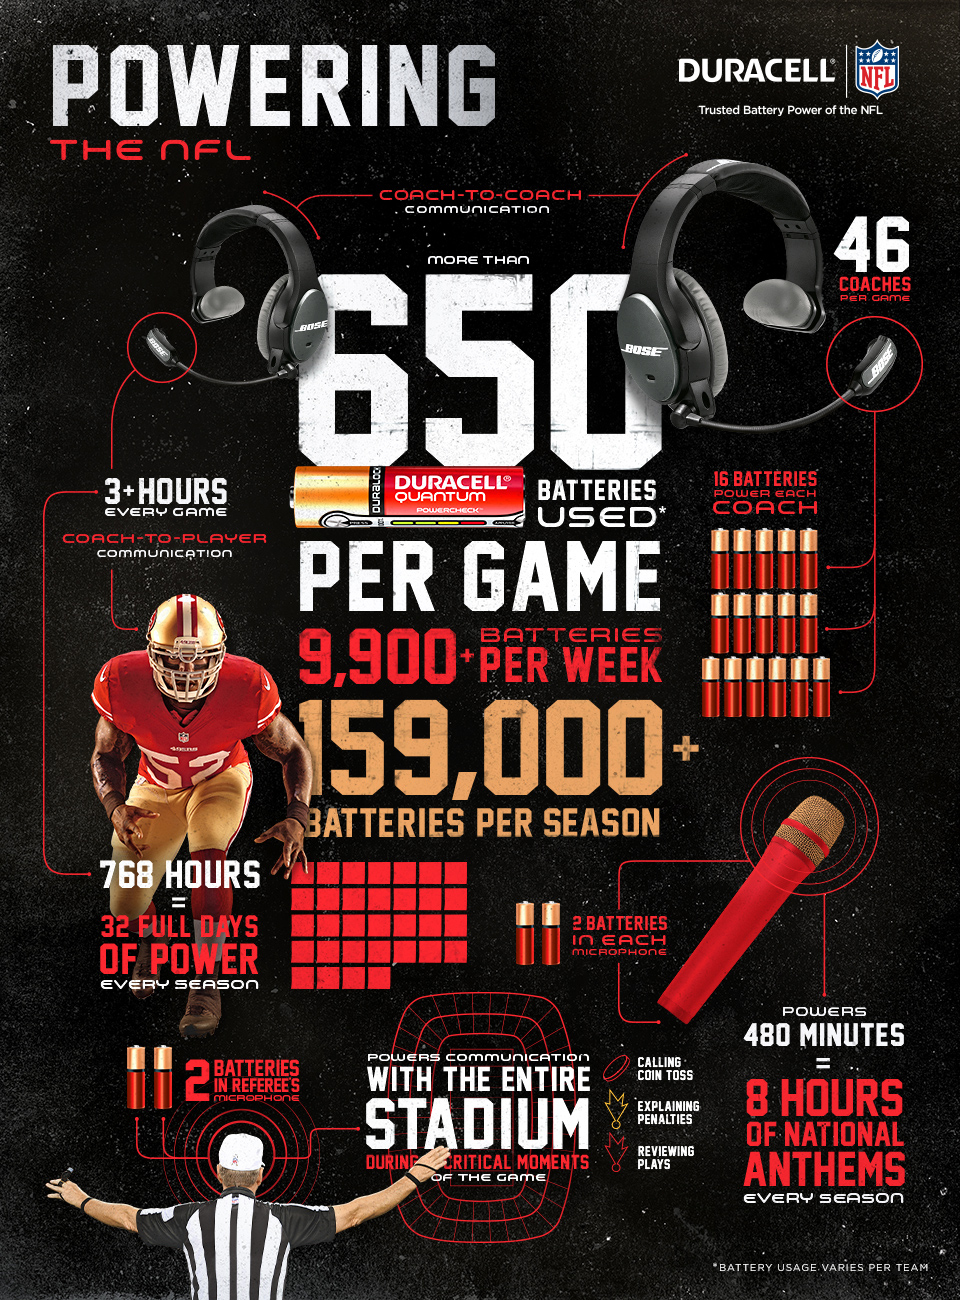 Infographic Friday: Duracell Powering the NFL